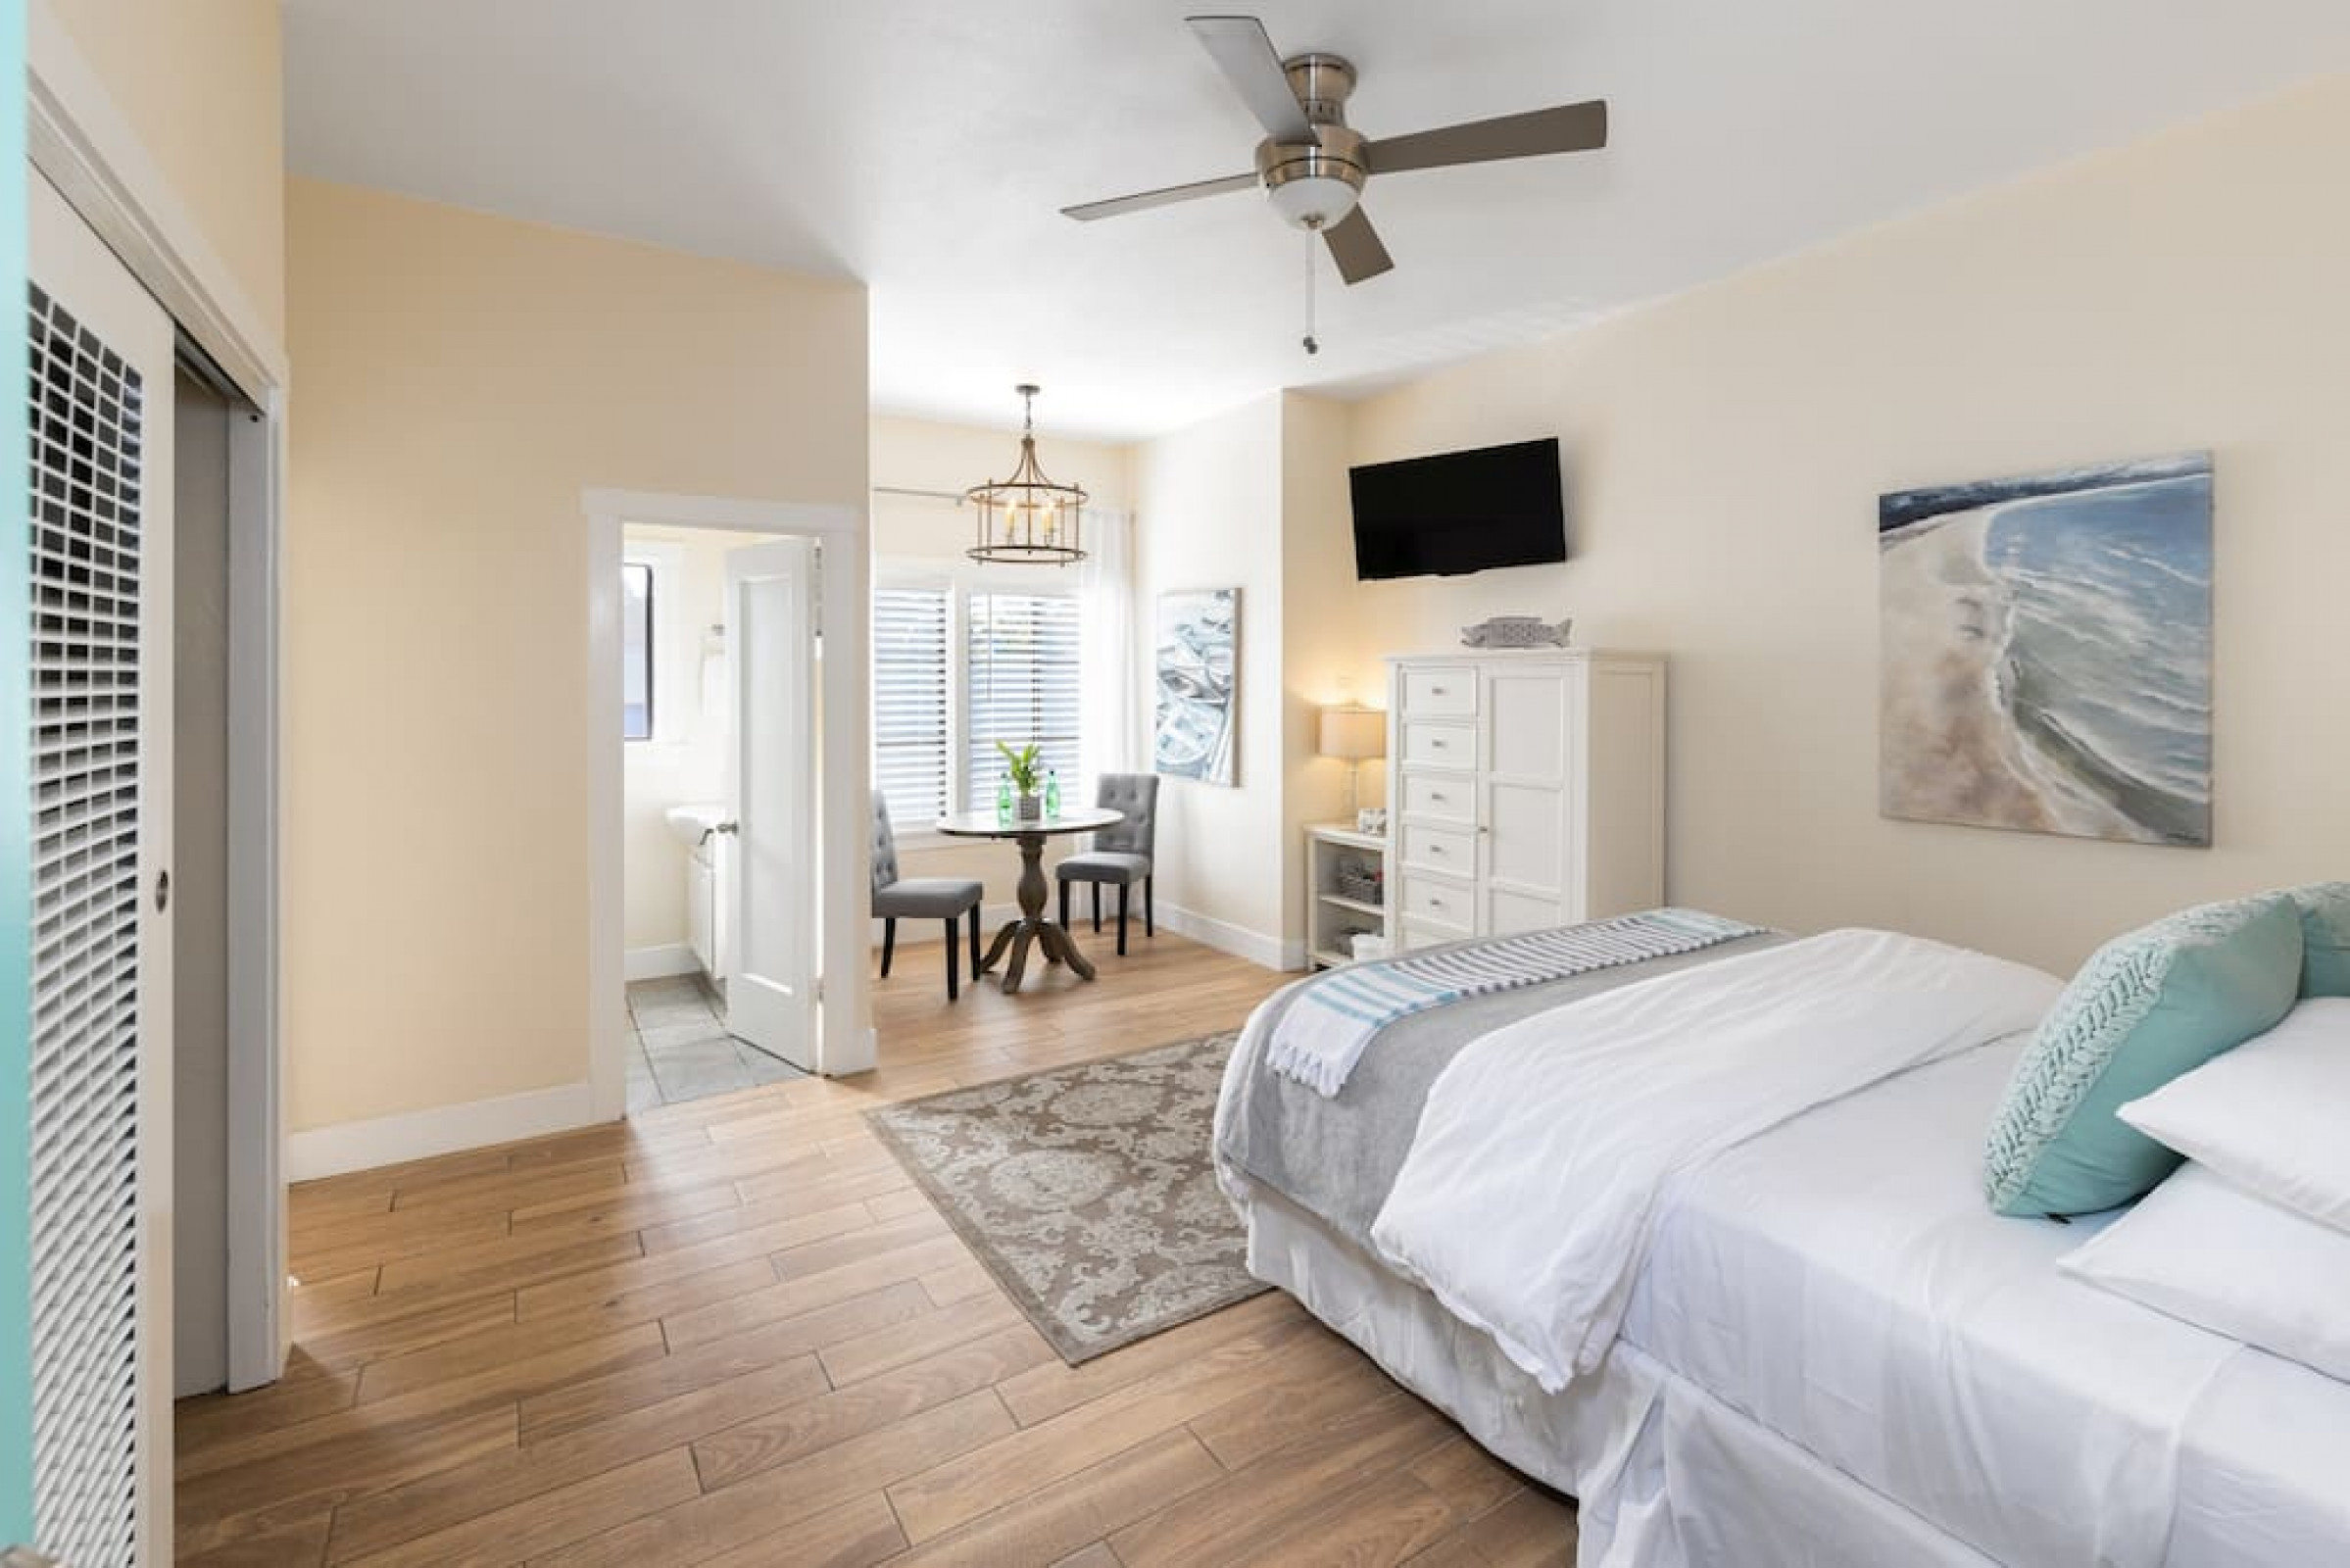 Charming Studio in the heart of Capitola Village!